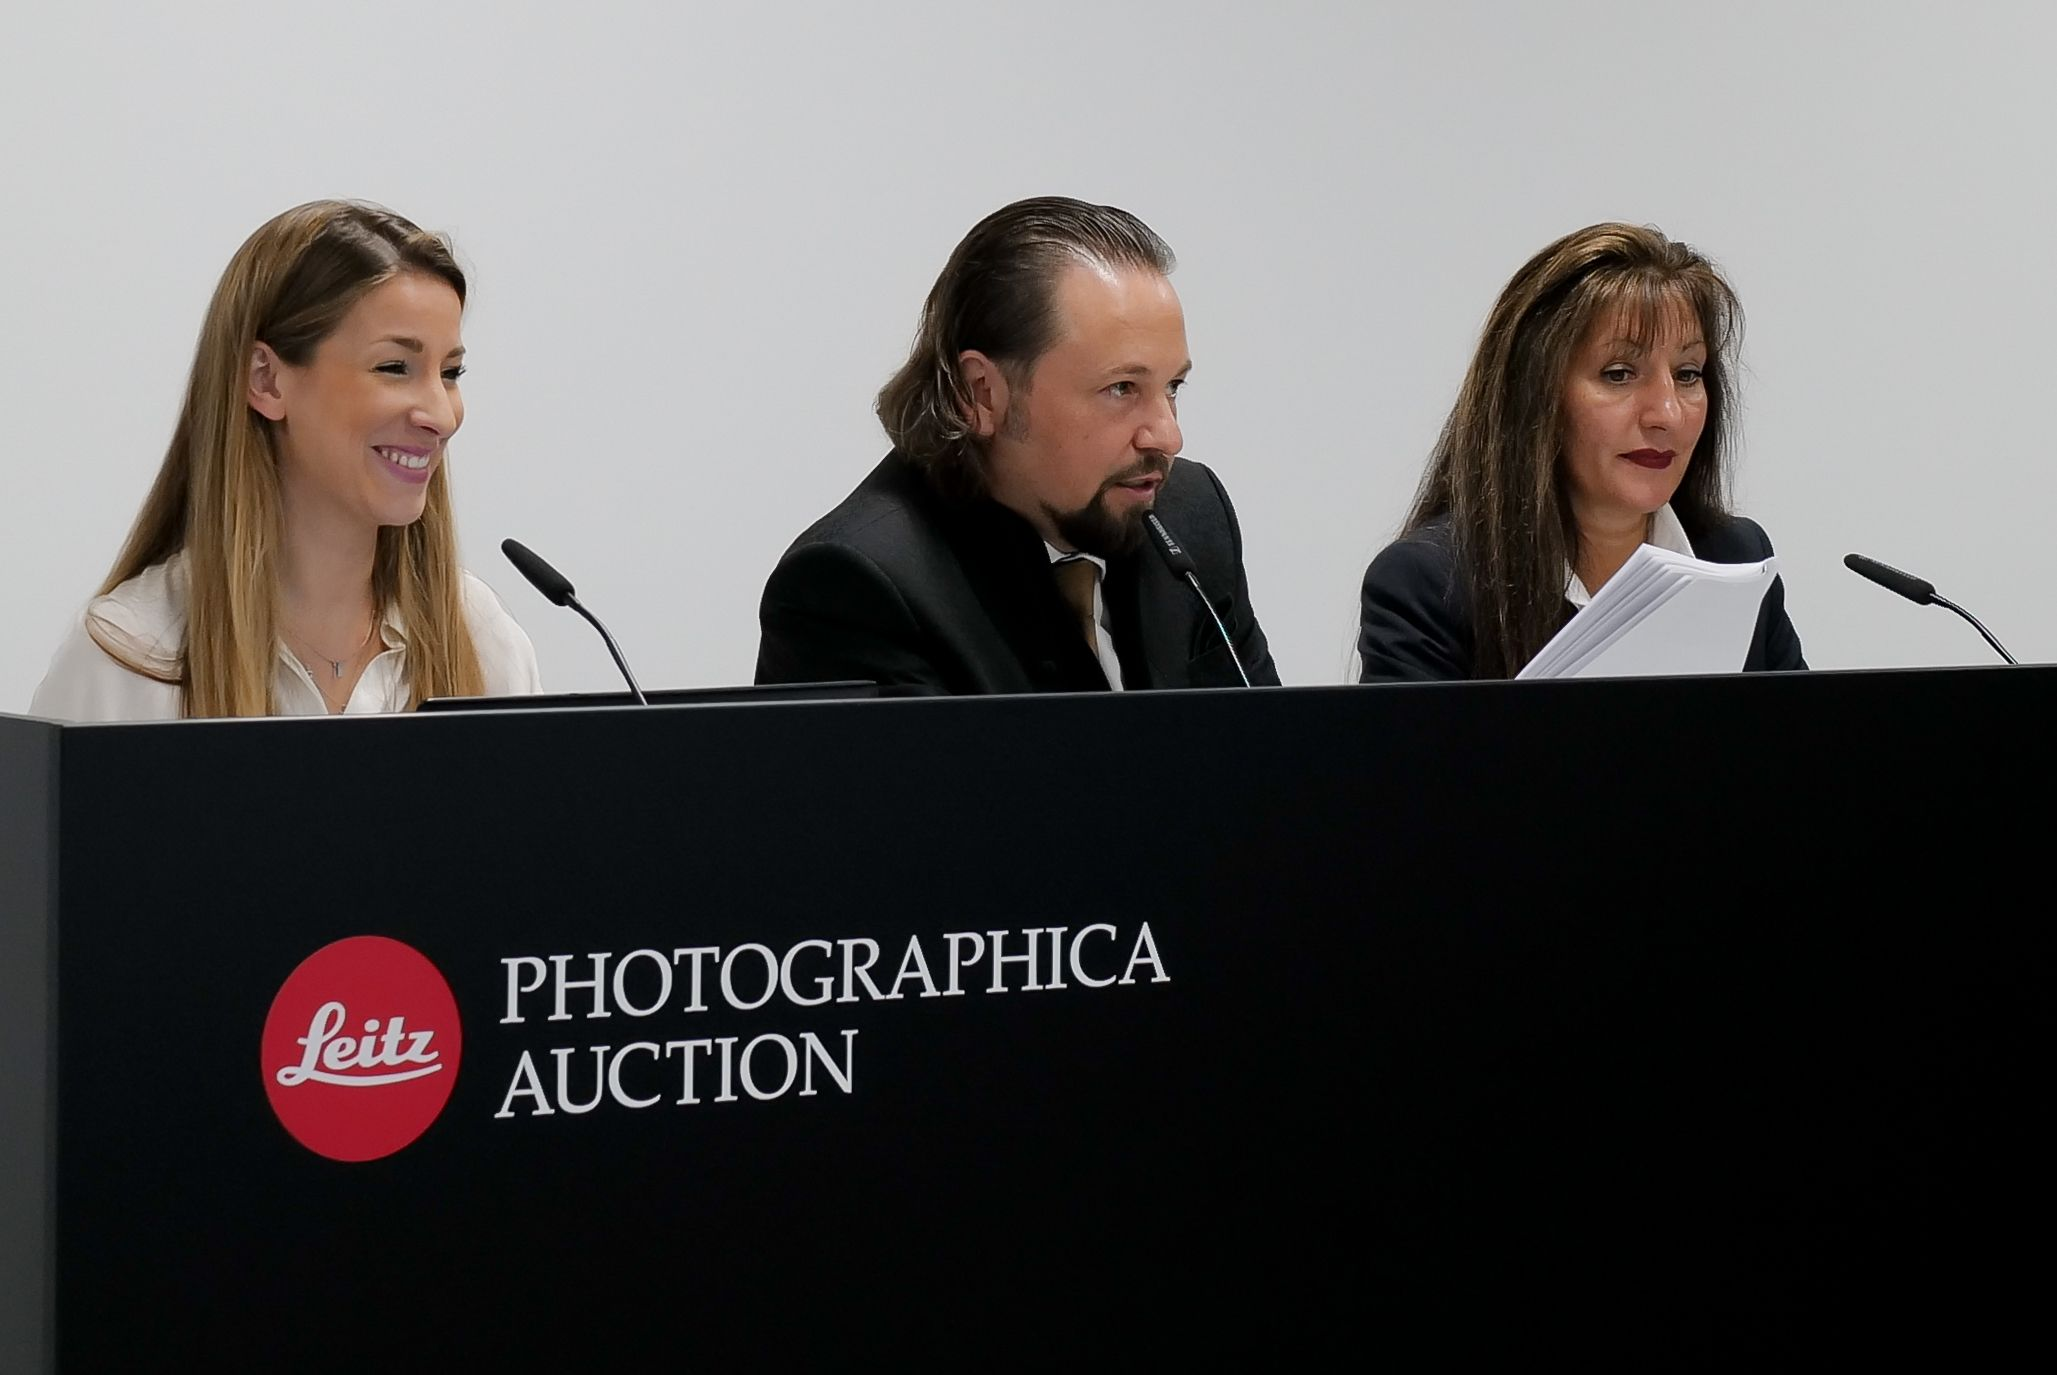 Fotocredit: Leitz Photographica Auction/Theimer